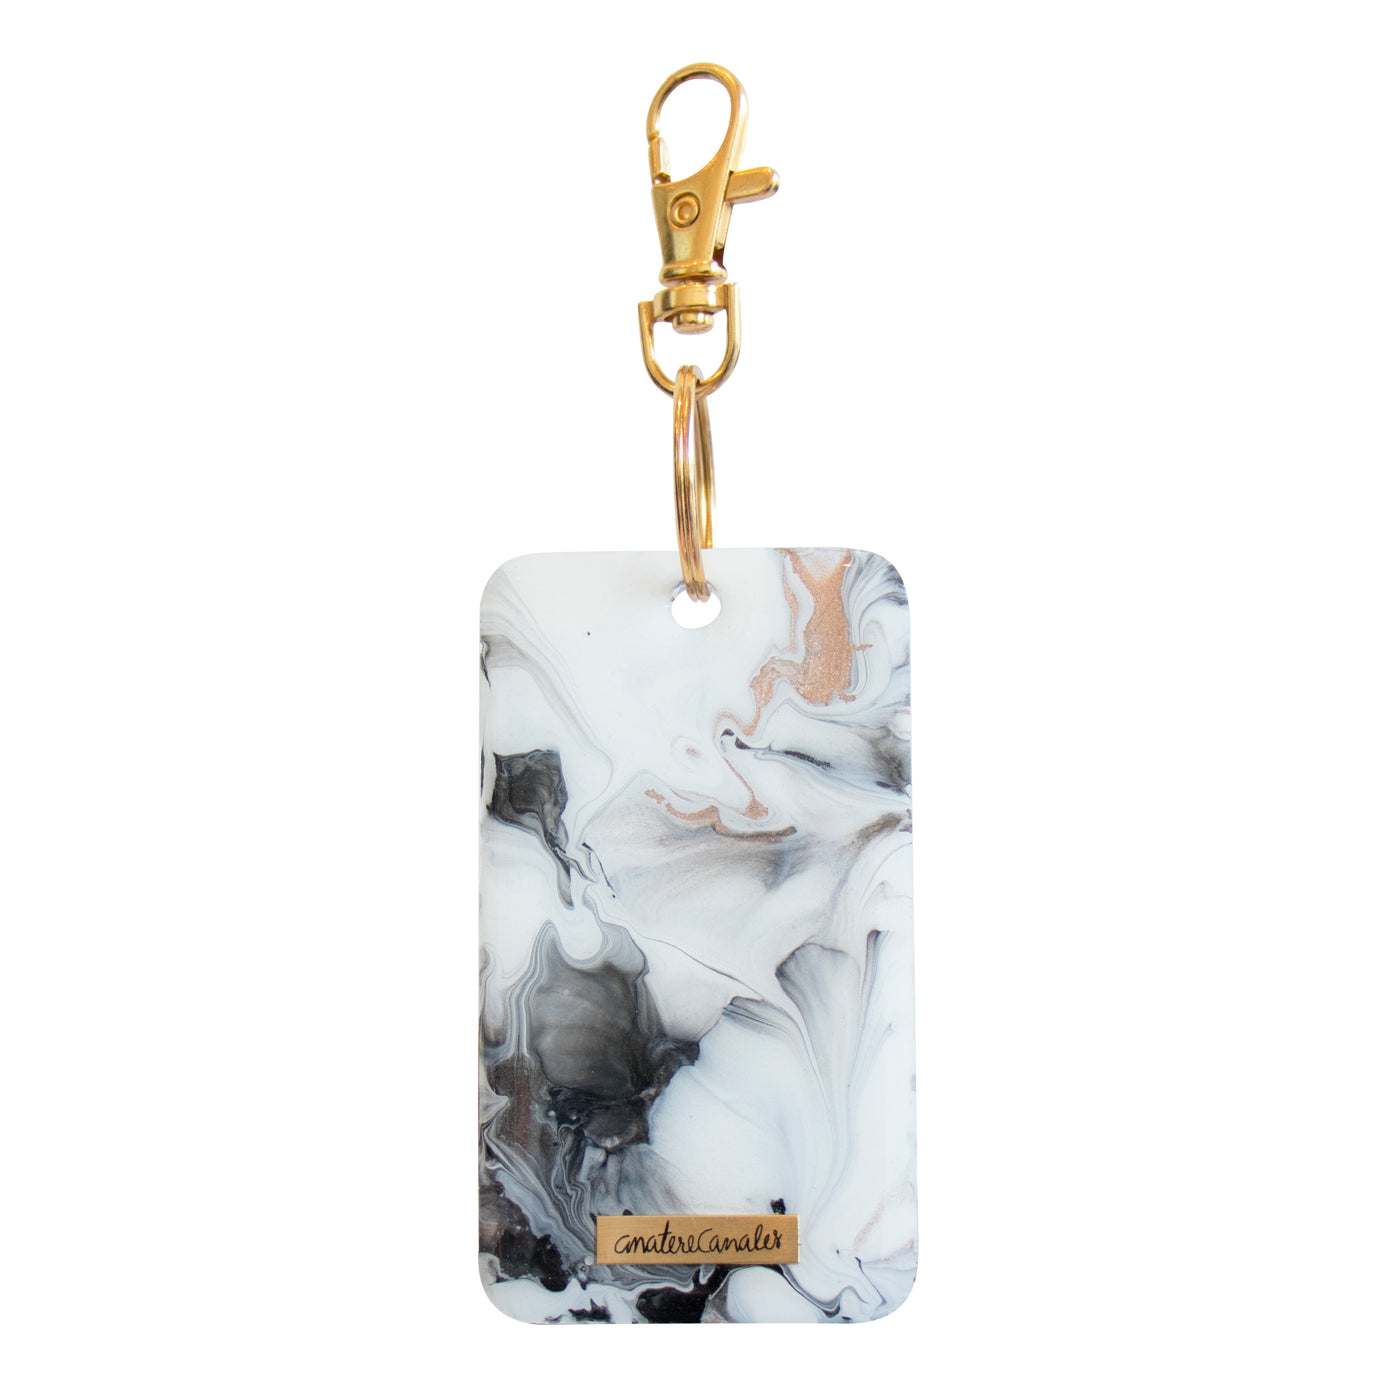 Sueño Classic Marble Rectangular - Ana Tere Canales